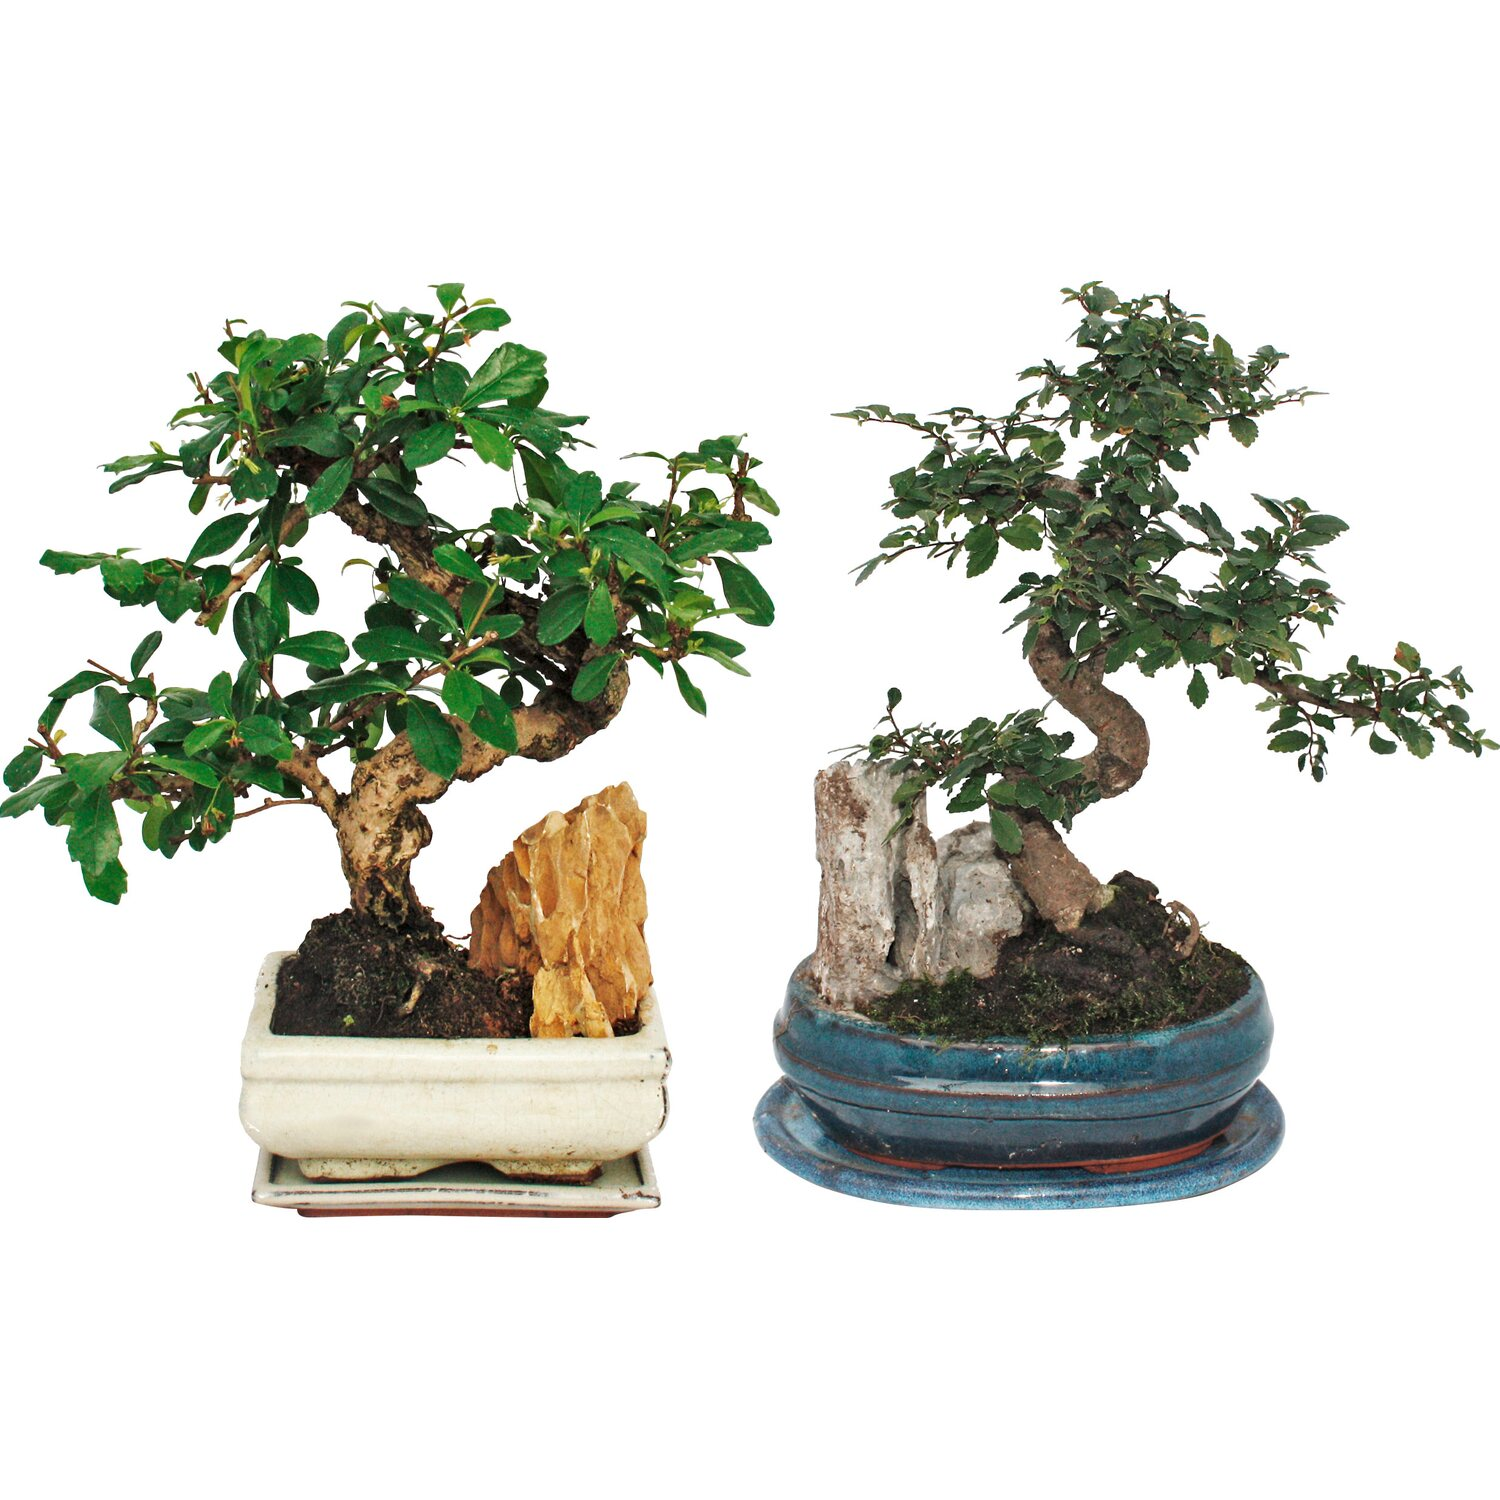 bonsai baum arten bonsai baum kaufen bonsai arten ginkgobaum bonsai bonsai arten bonsai arten. Black Bedroom Furniture Sets. Home Design Ideas